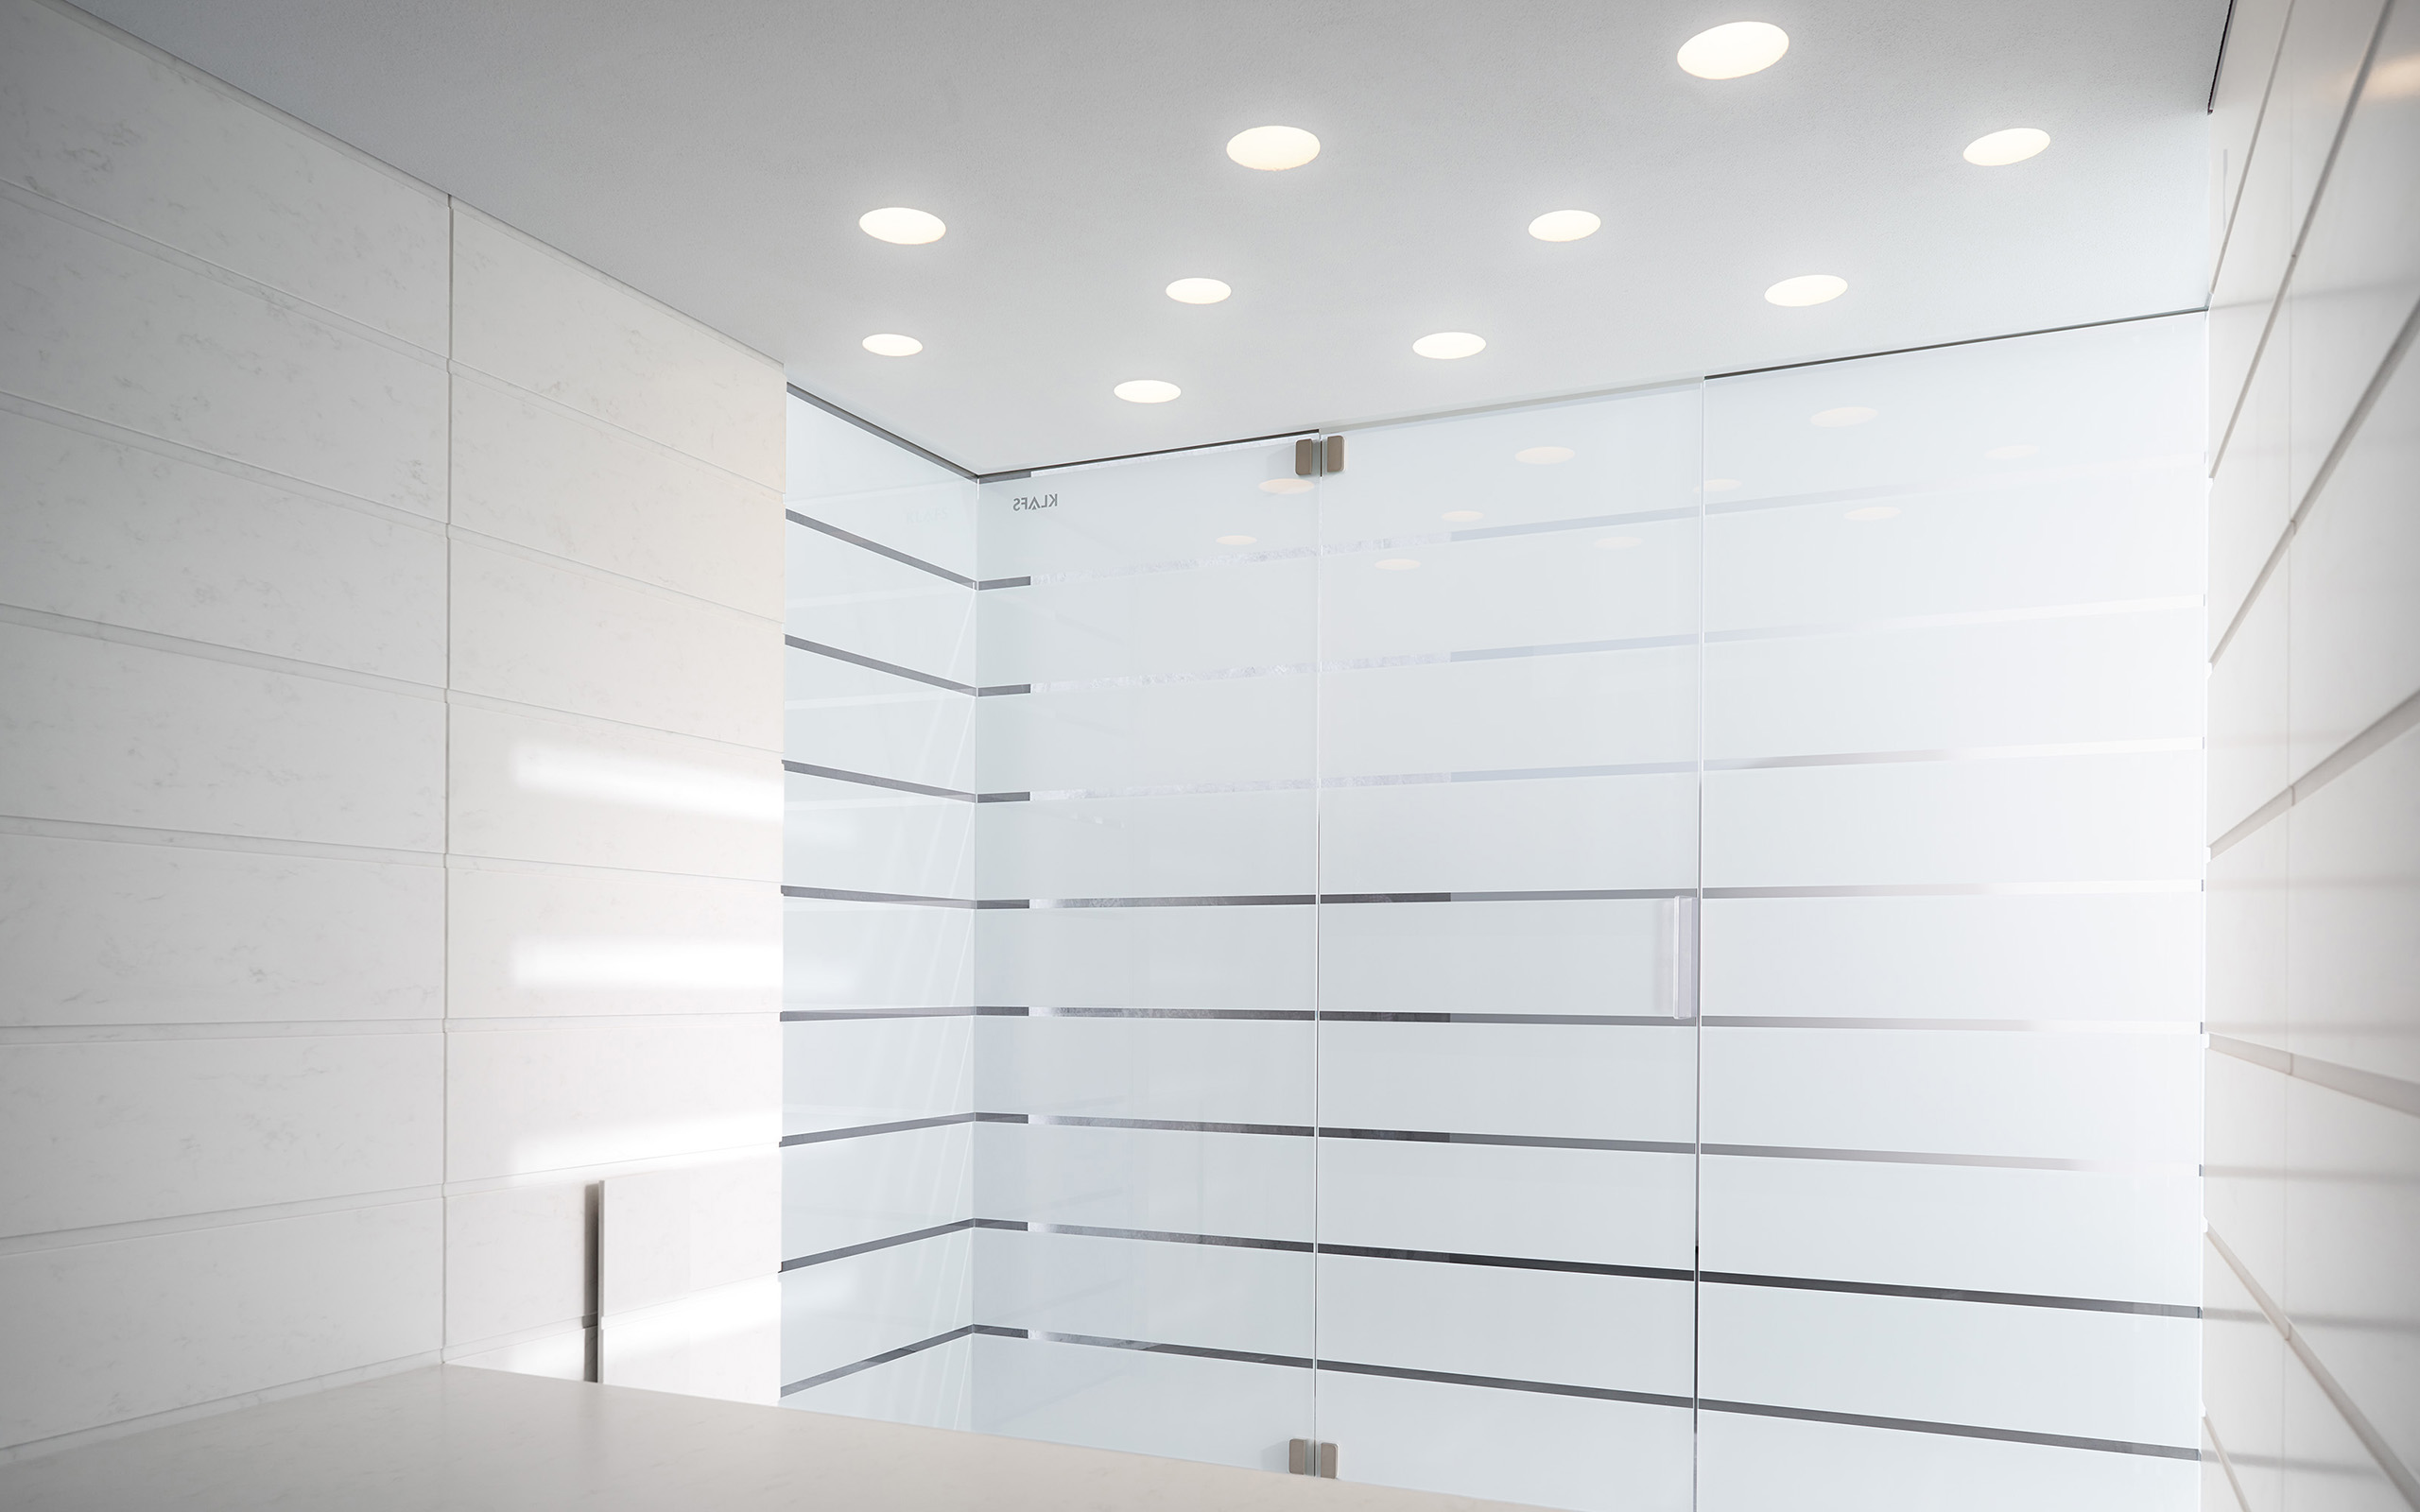 ... view of the MATTEO THUN steam room ...